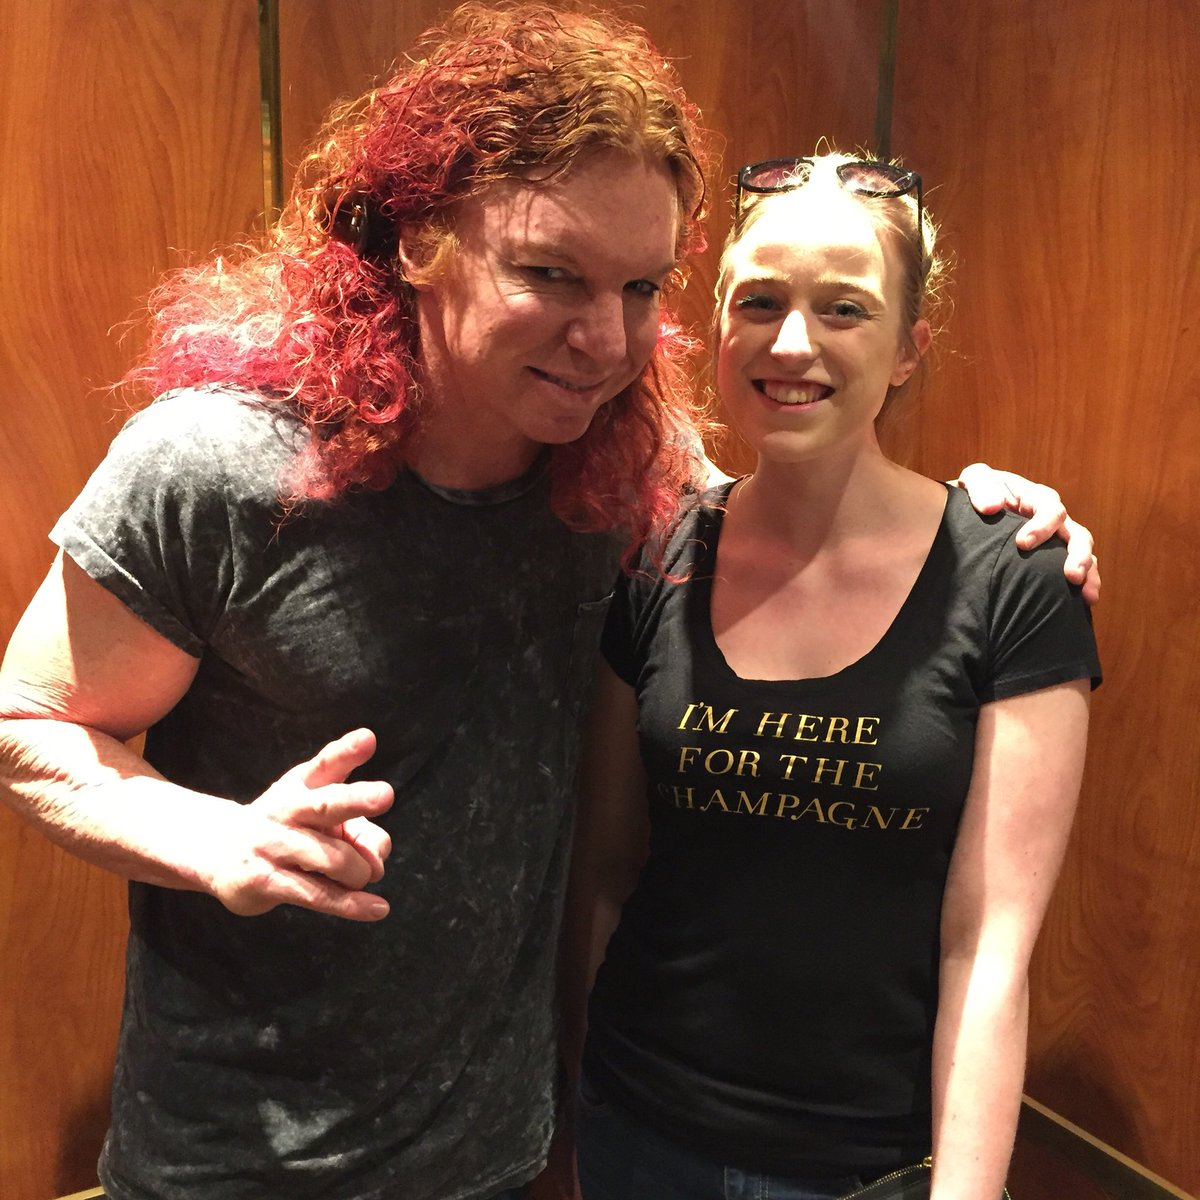 Michaela bourgeois on twitter thursday what if we meet carrot michaela bourgeois on twitter thursday what if we meet carrot top on the way to his show elevator doors open meets carrot top m4hsunfo